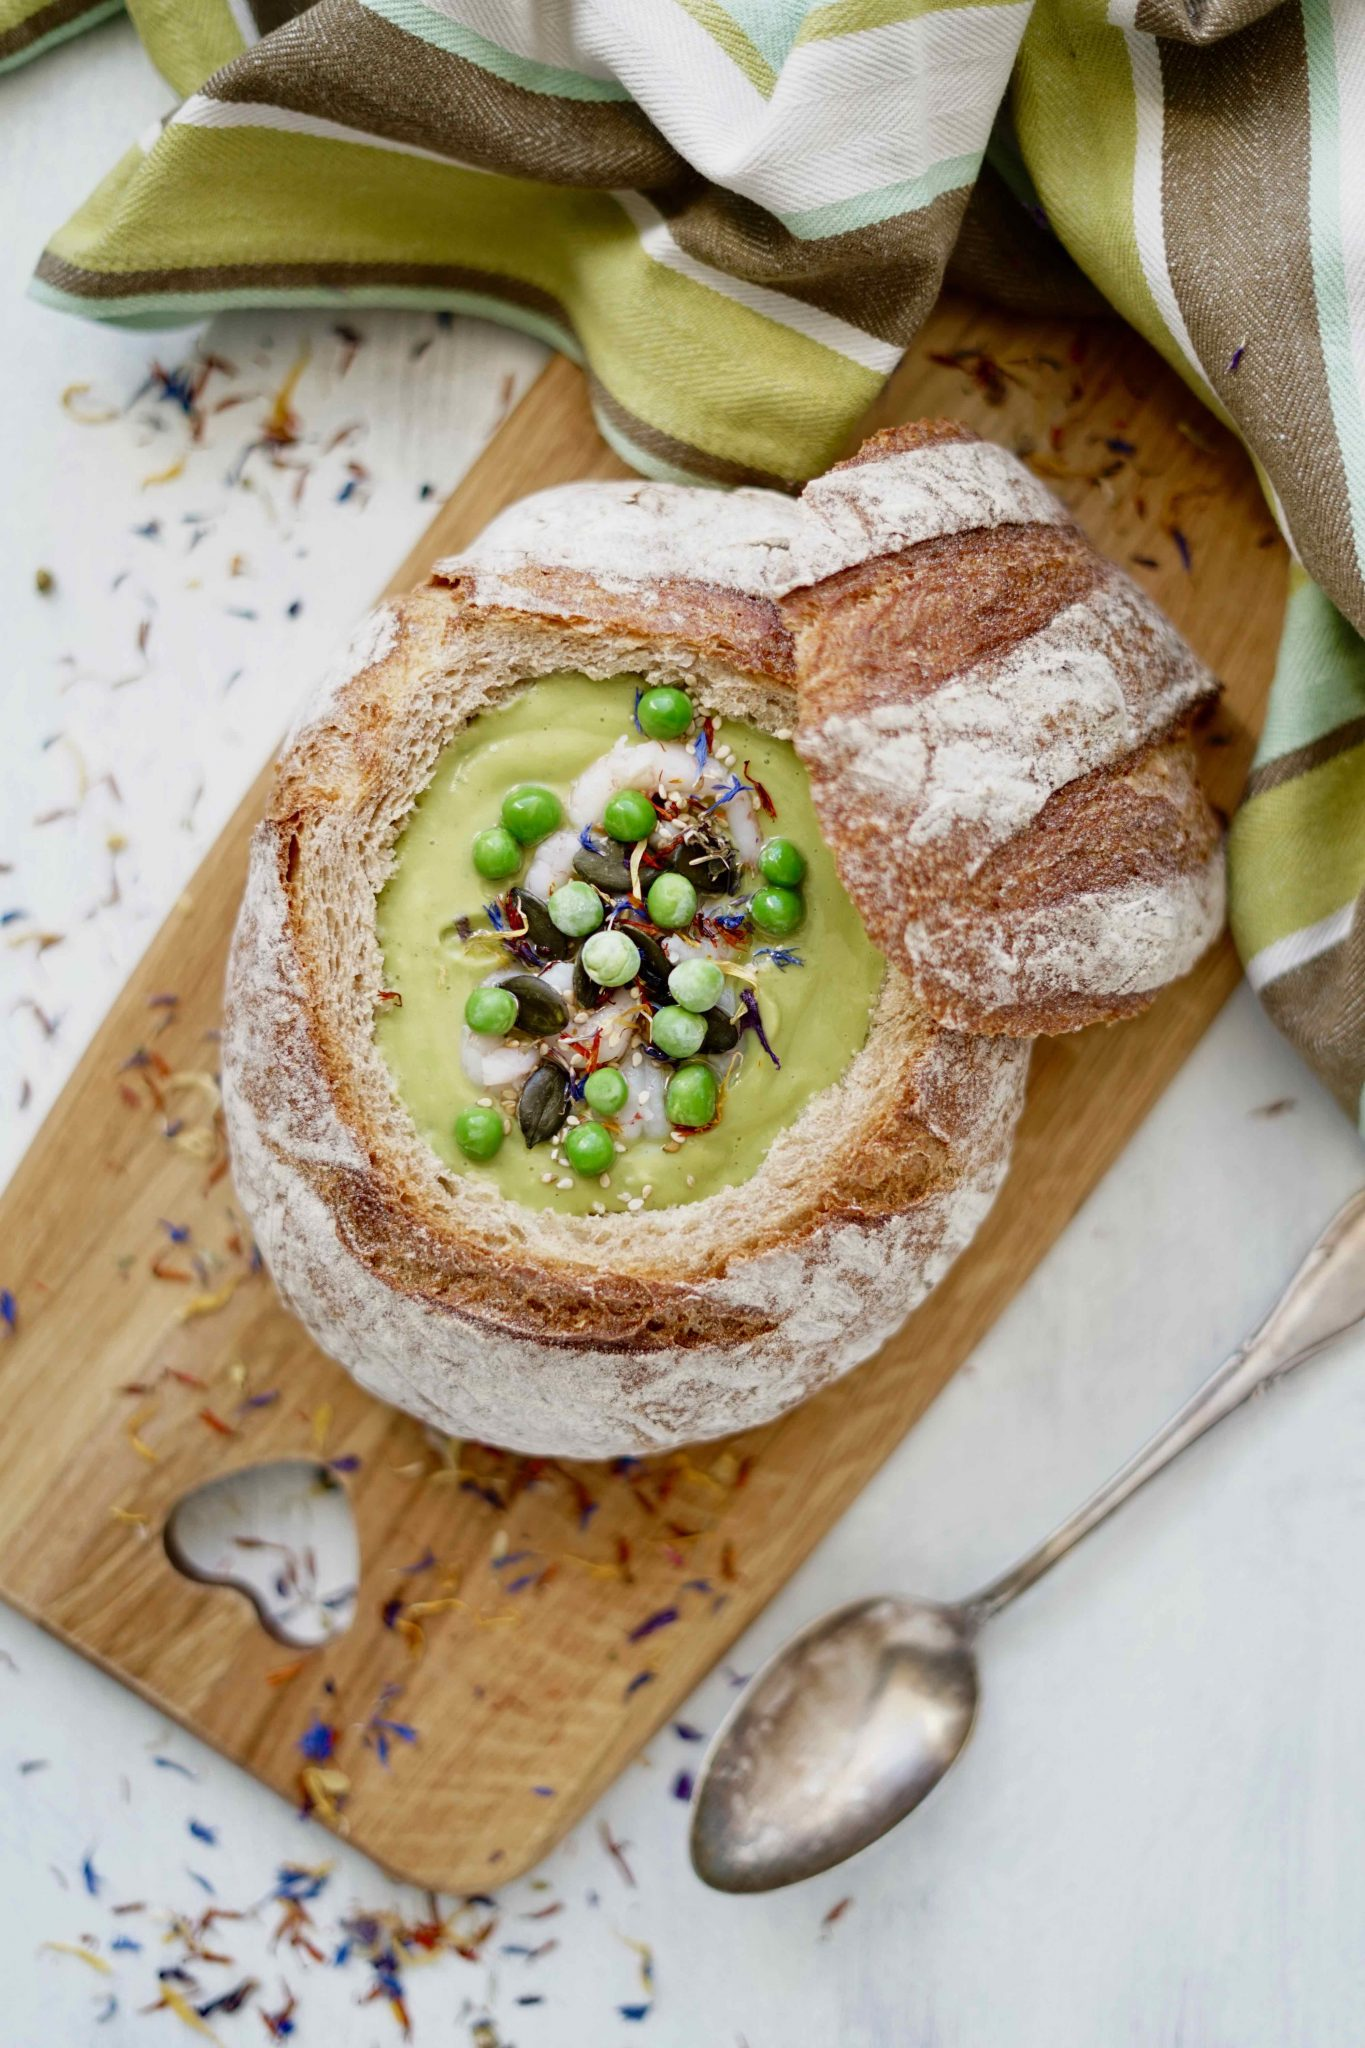 Avocadosuppe im Brot